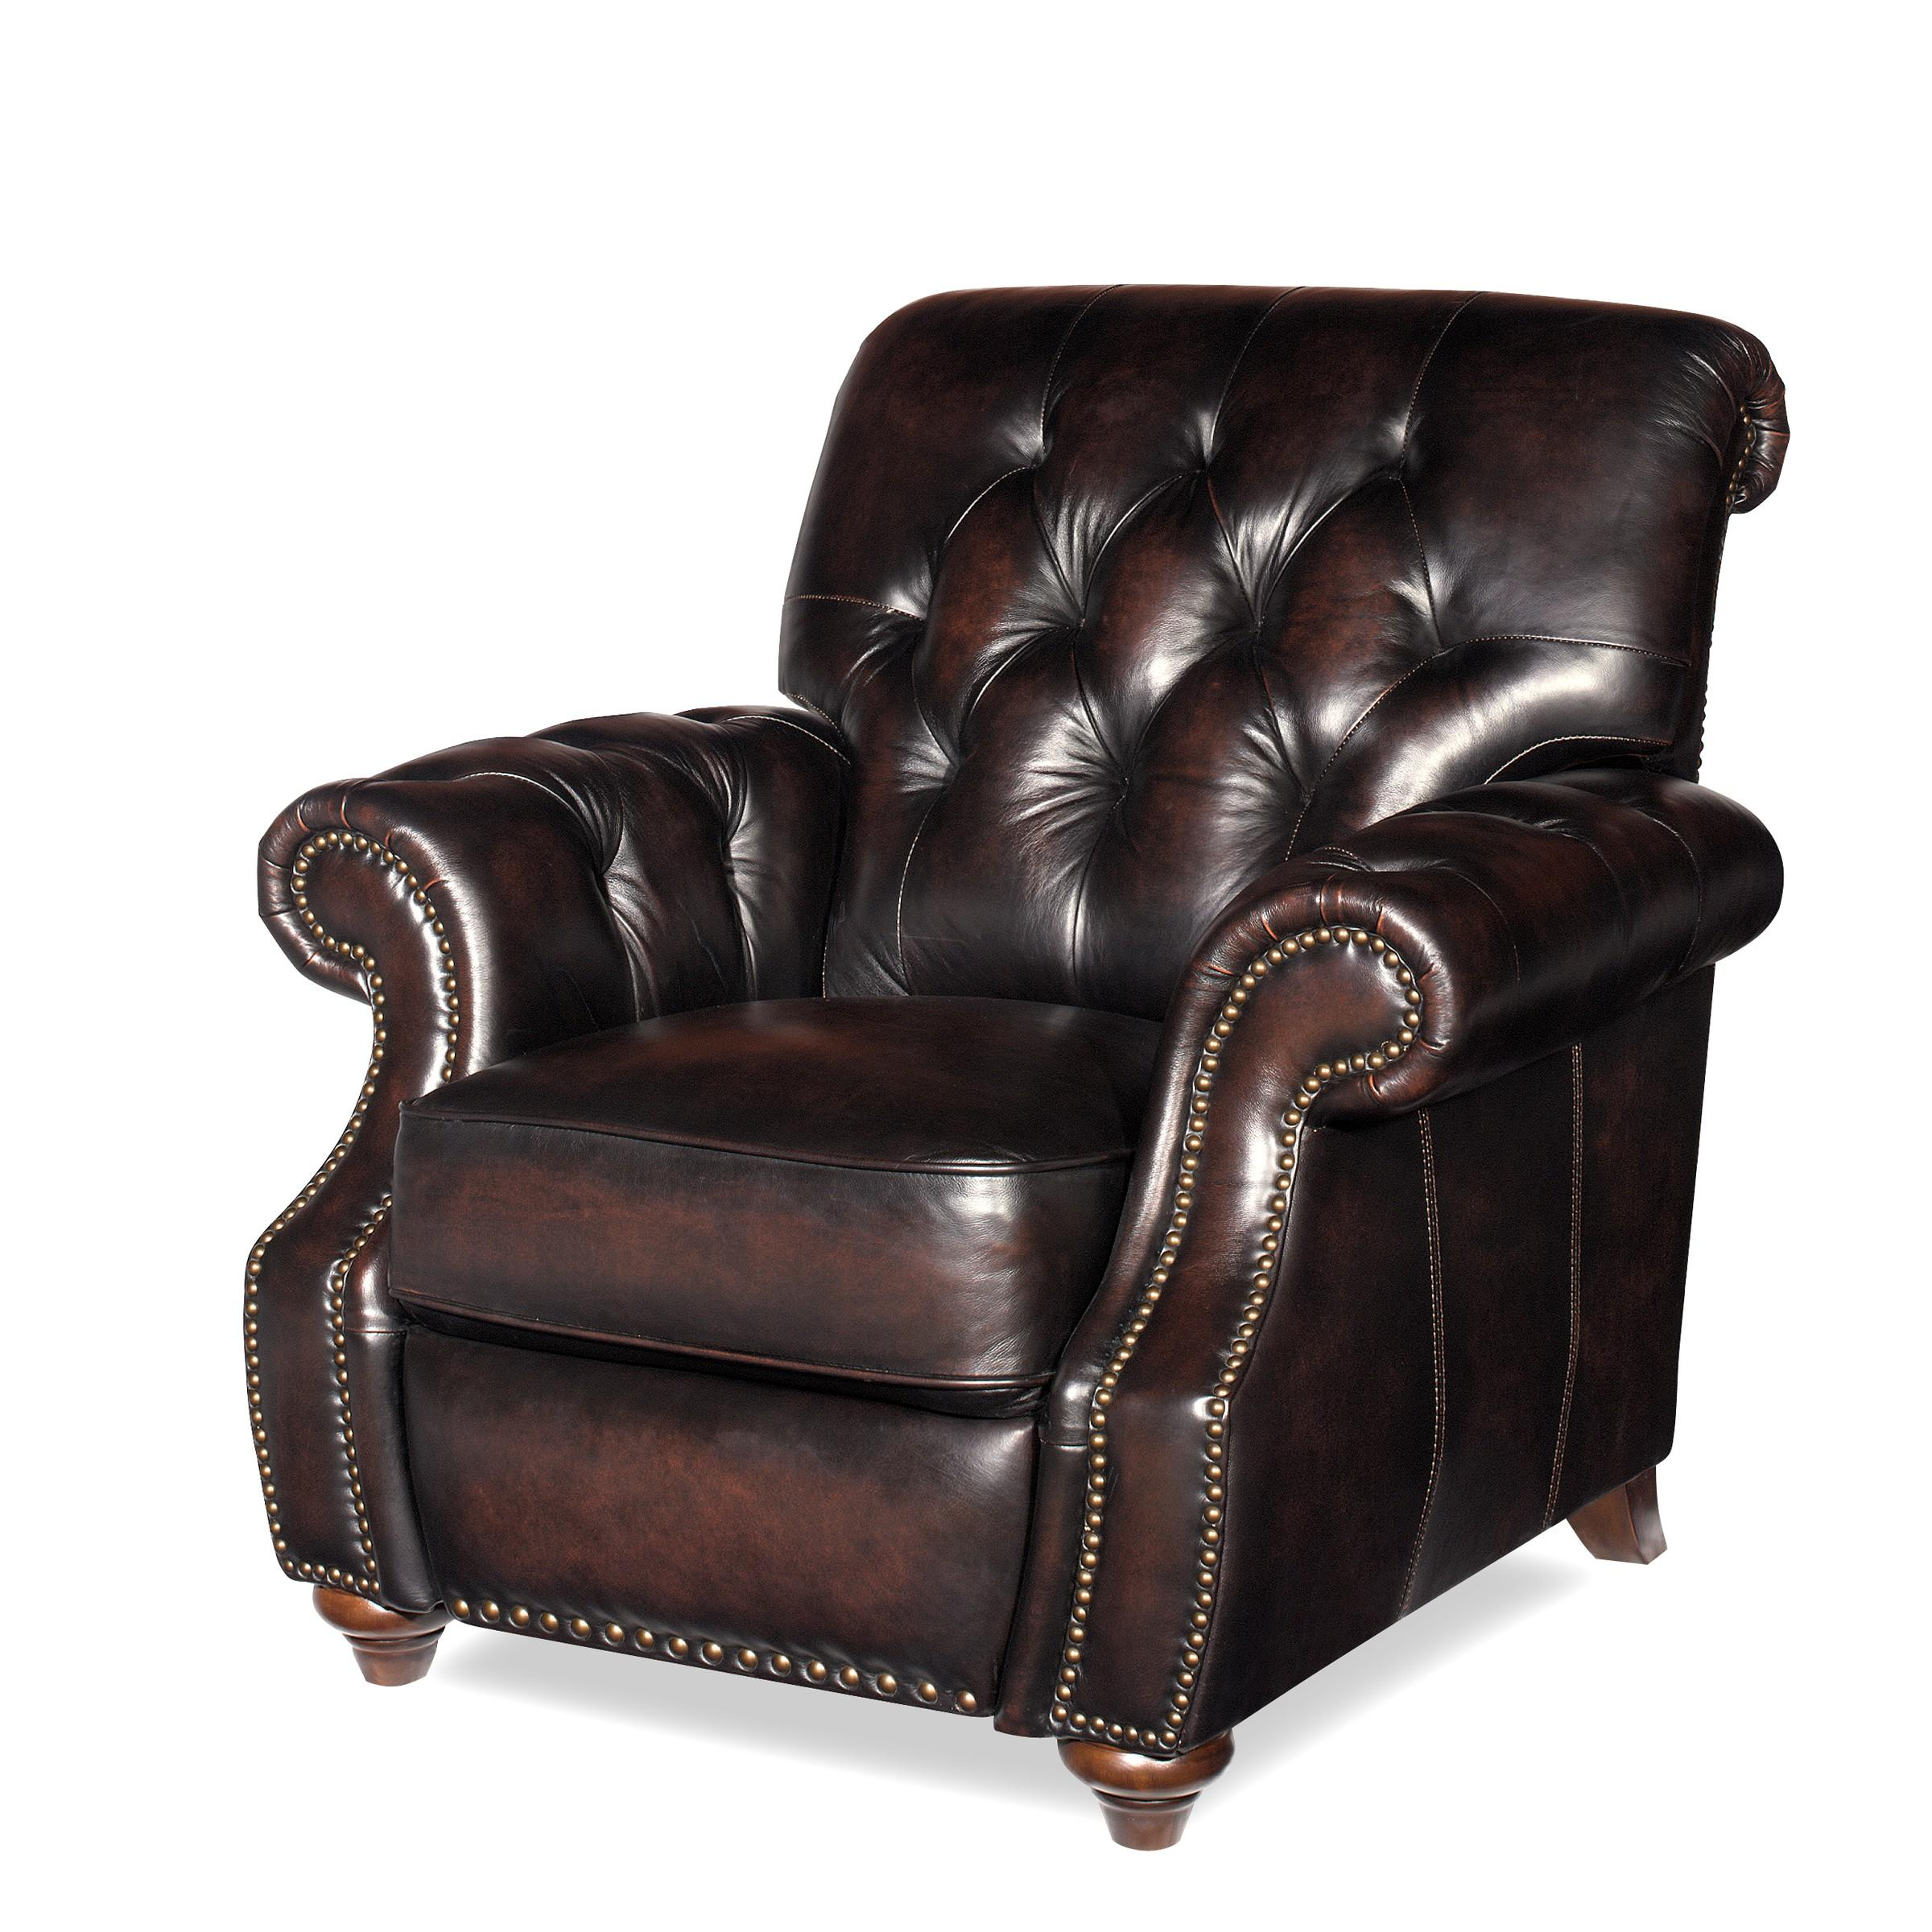 Traditional Recliner Chair with Button Tufting and Nail Head Trim  sc 1 st  Wolf Furniture & Traditional Recliner Chair with Button Tufting and Nail Head Trim ... islam-shia.org